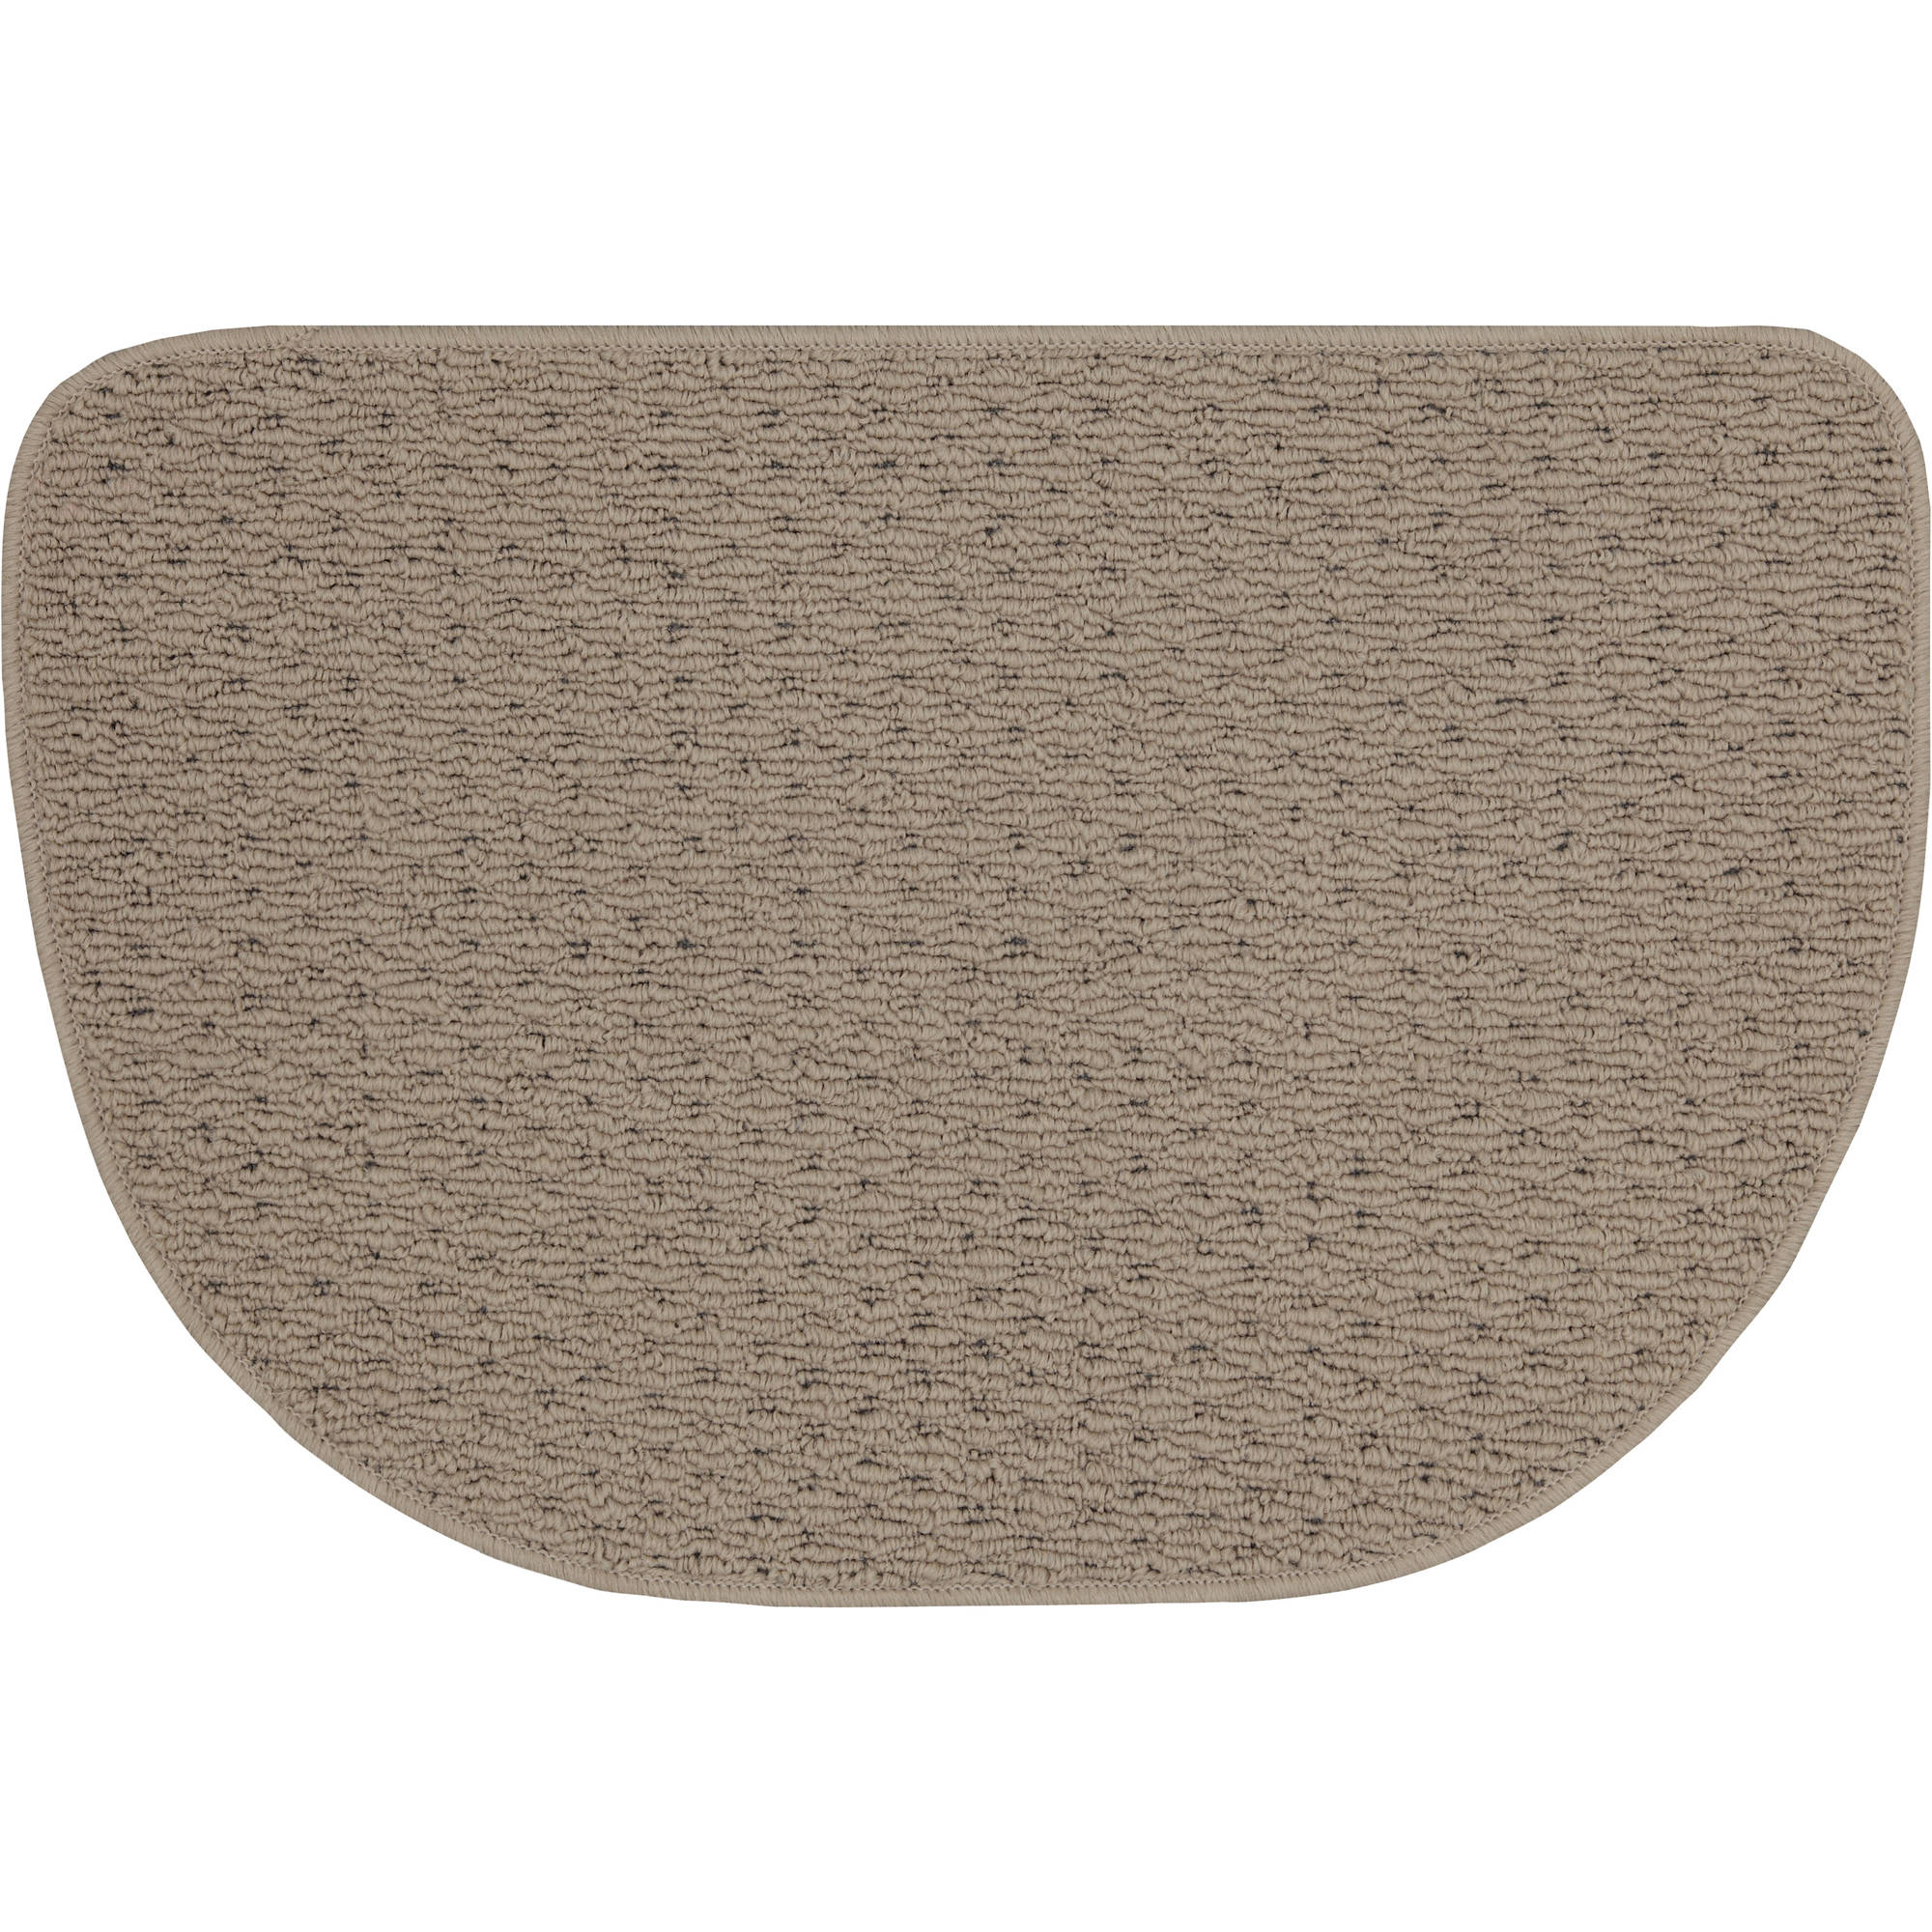 Foam Kitchen Floor Mats Kitchen Rugs Rugs Walmartcom Walmartcom